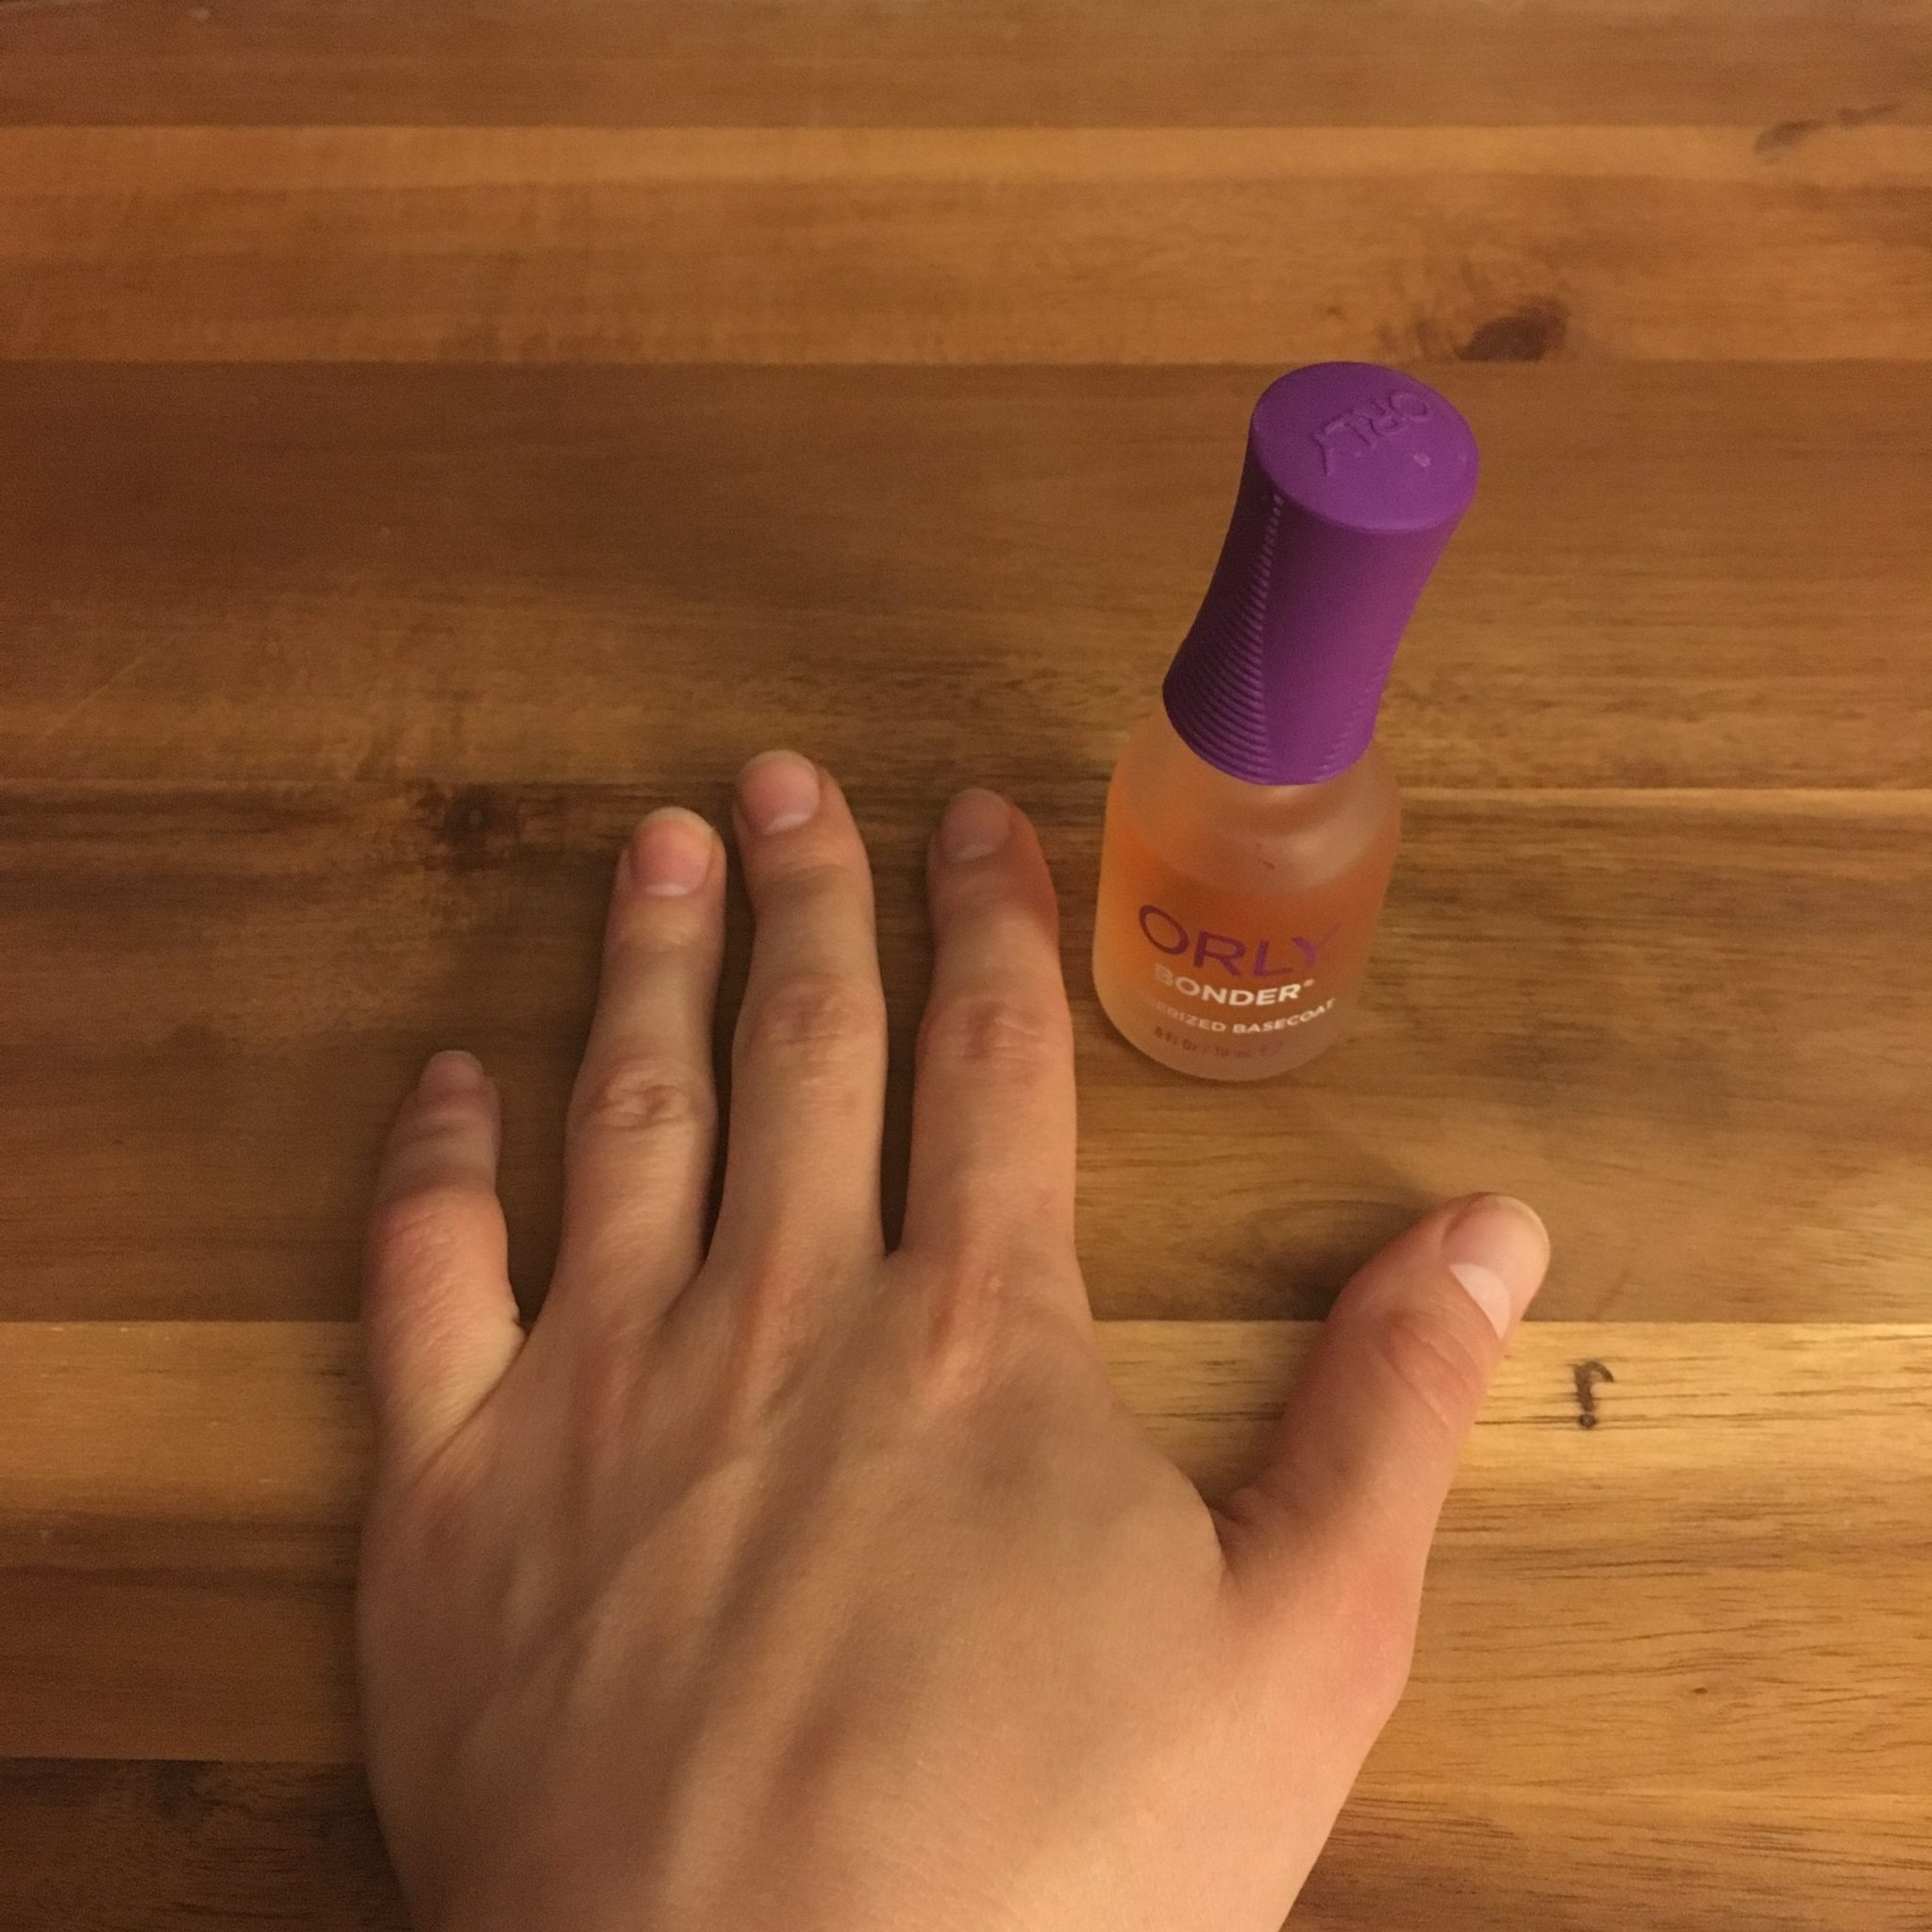 Glass of Glam Nails | Glass of Glam Nails | At Home Manicure Tips by popular Chicago beauty blog, Glass of Glam: image of a woman's hand next to a bottle of Amazon Orly Base Nail Coat.